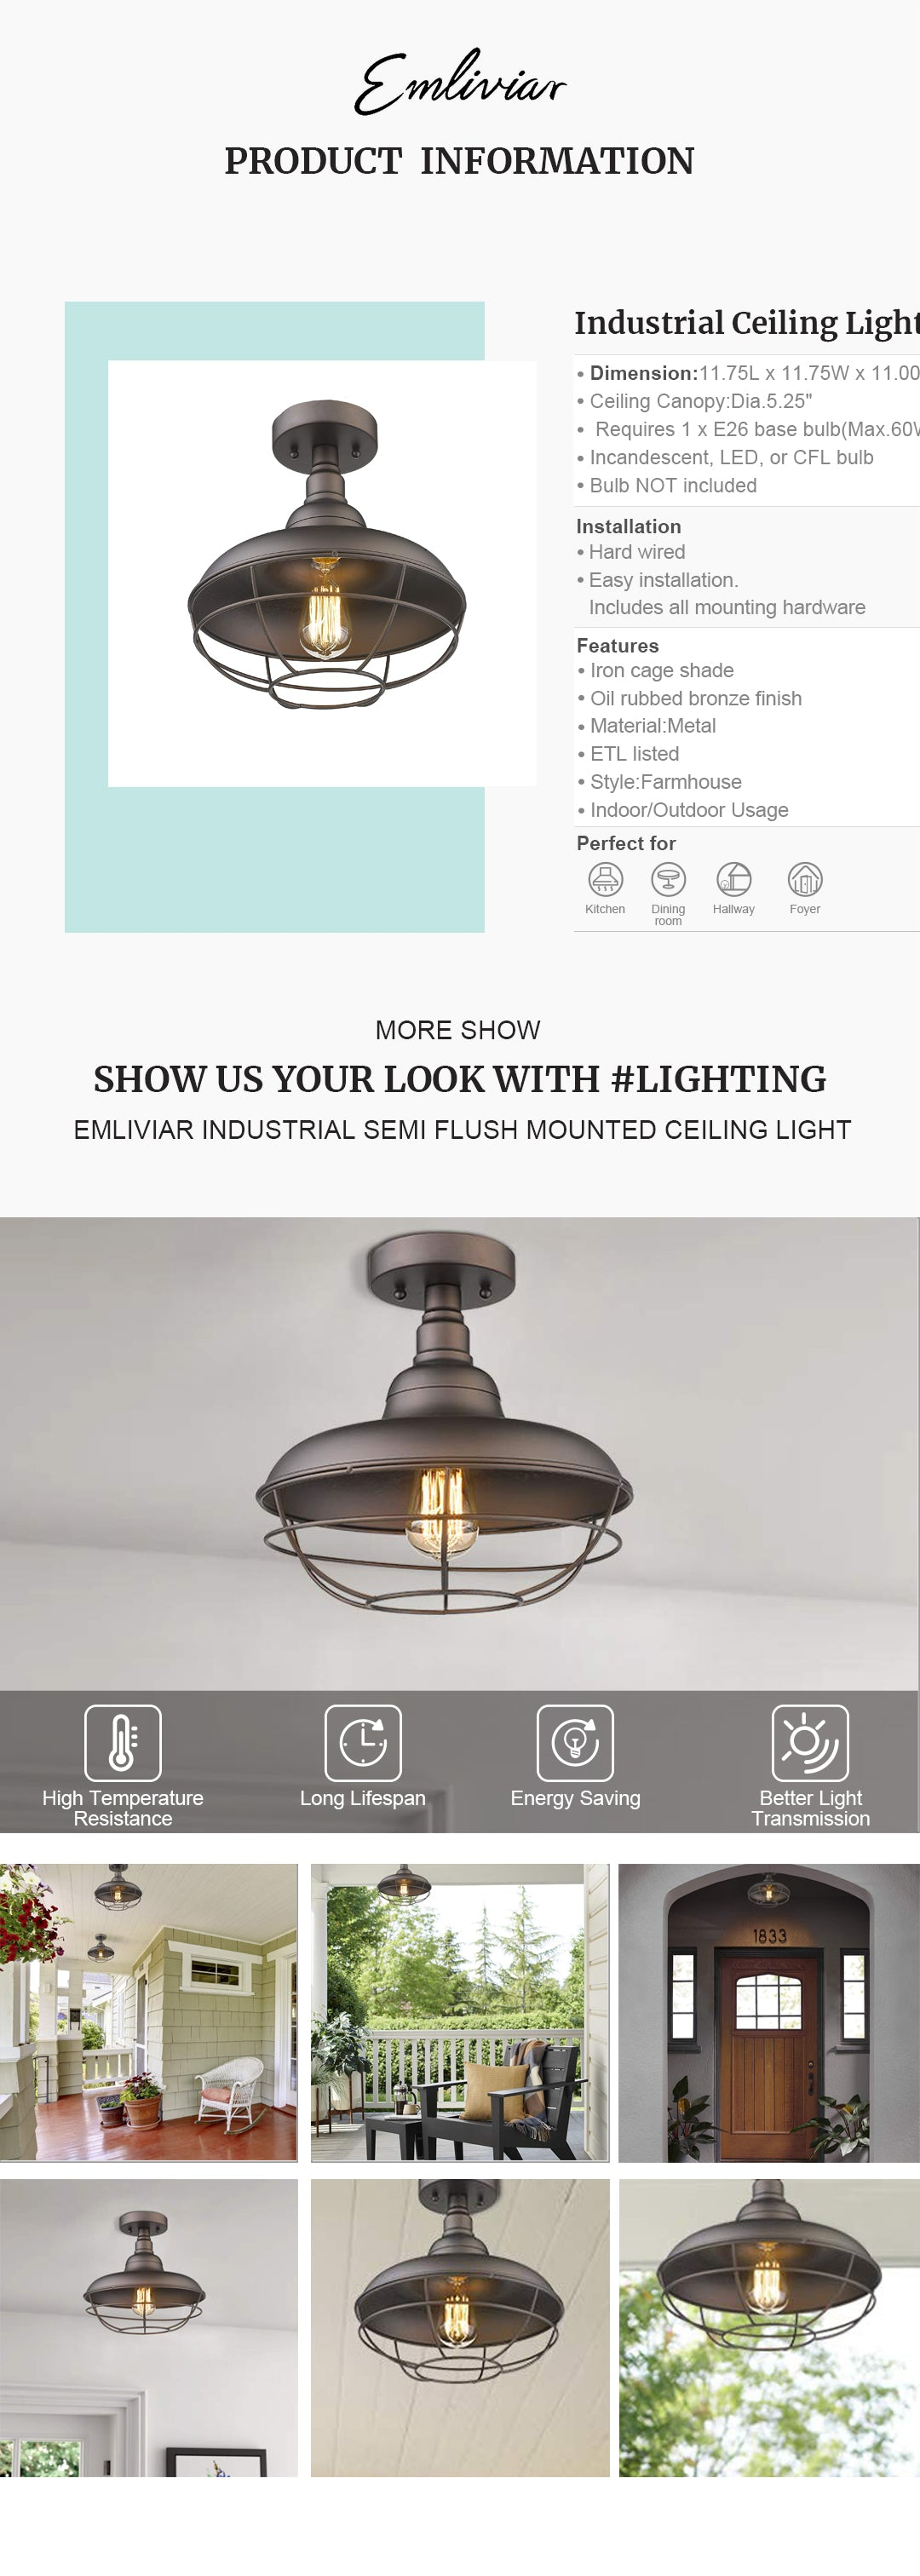 """Vintage semi-flush mount ceiling light features a iron cage shade and oil rubbed bronze finish This farmhouse ceiling light is perfect for kitchen, bedroom, hallway, foyer, indoor and outdoor usage Easy installation. Includes all mounting hardware. ETL listed with a one-year warranty Hard wired. Requires 1 x E26 base bulb(Max.60W). Bulb NOT included. Available bulb type: incandescent, LED, or CFL bulb Dimension: 11.75"""" in diameter, 11"""" in height"""